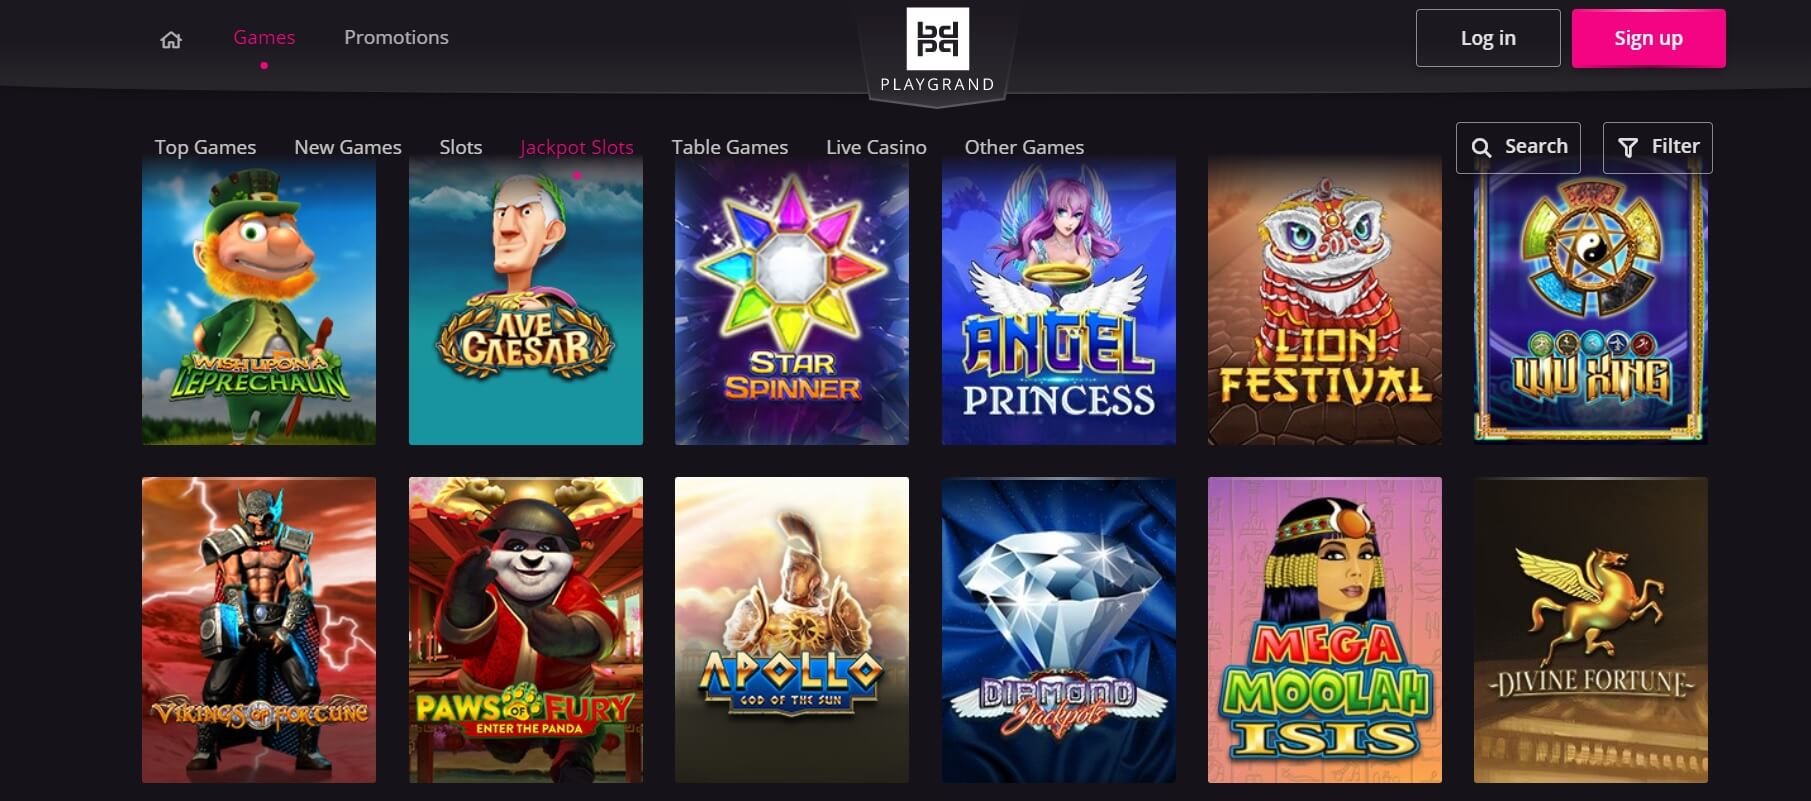 playgrand casino games and slots canada